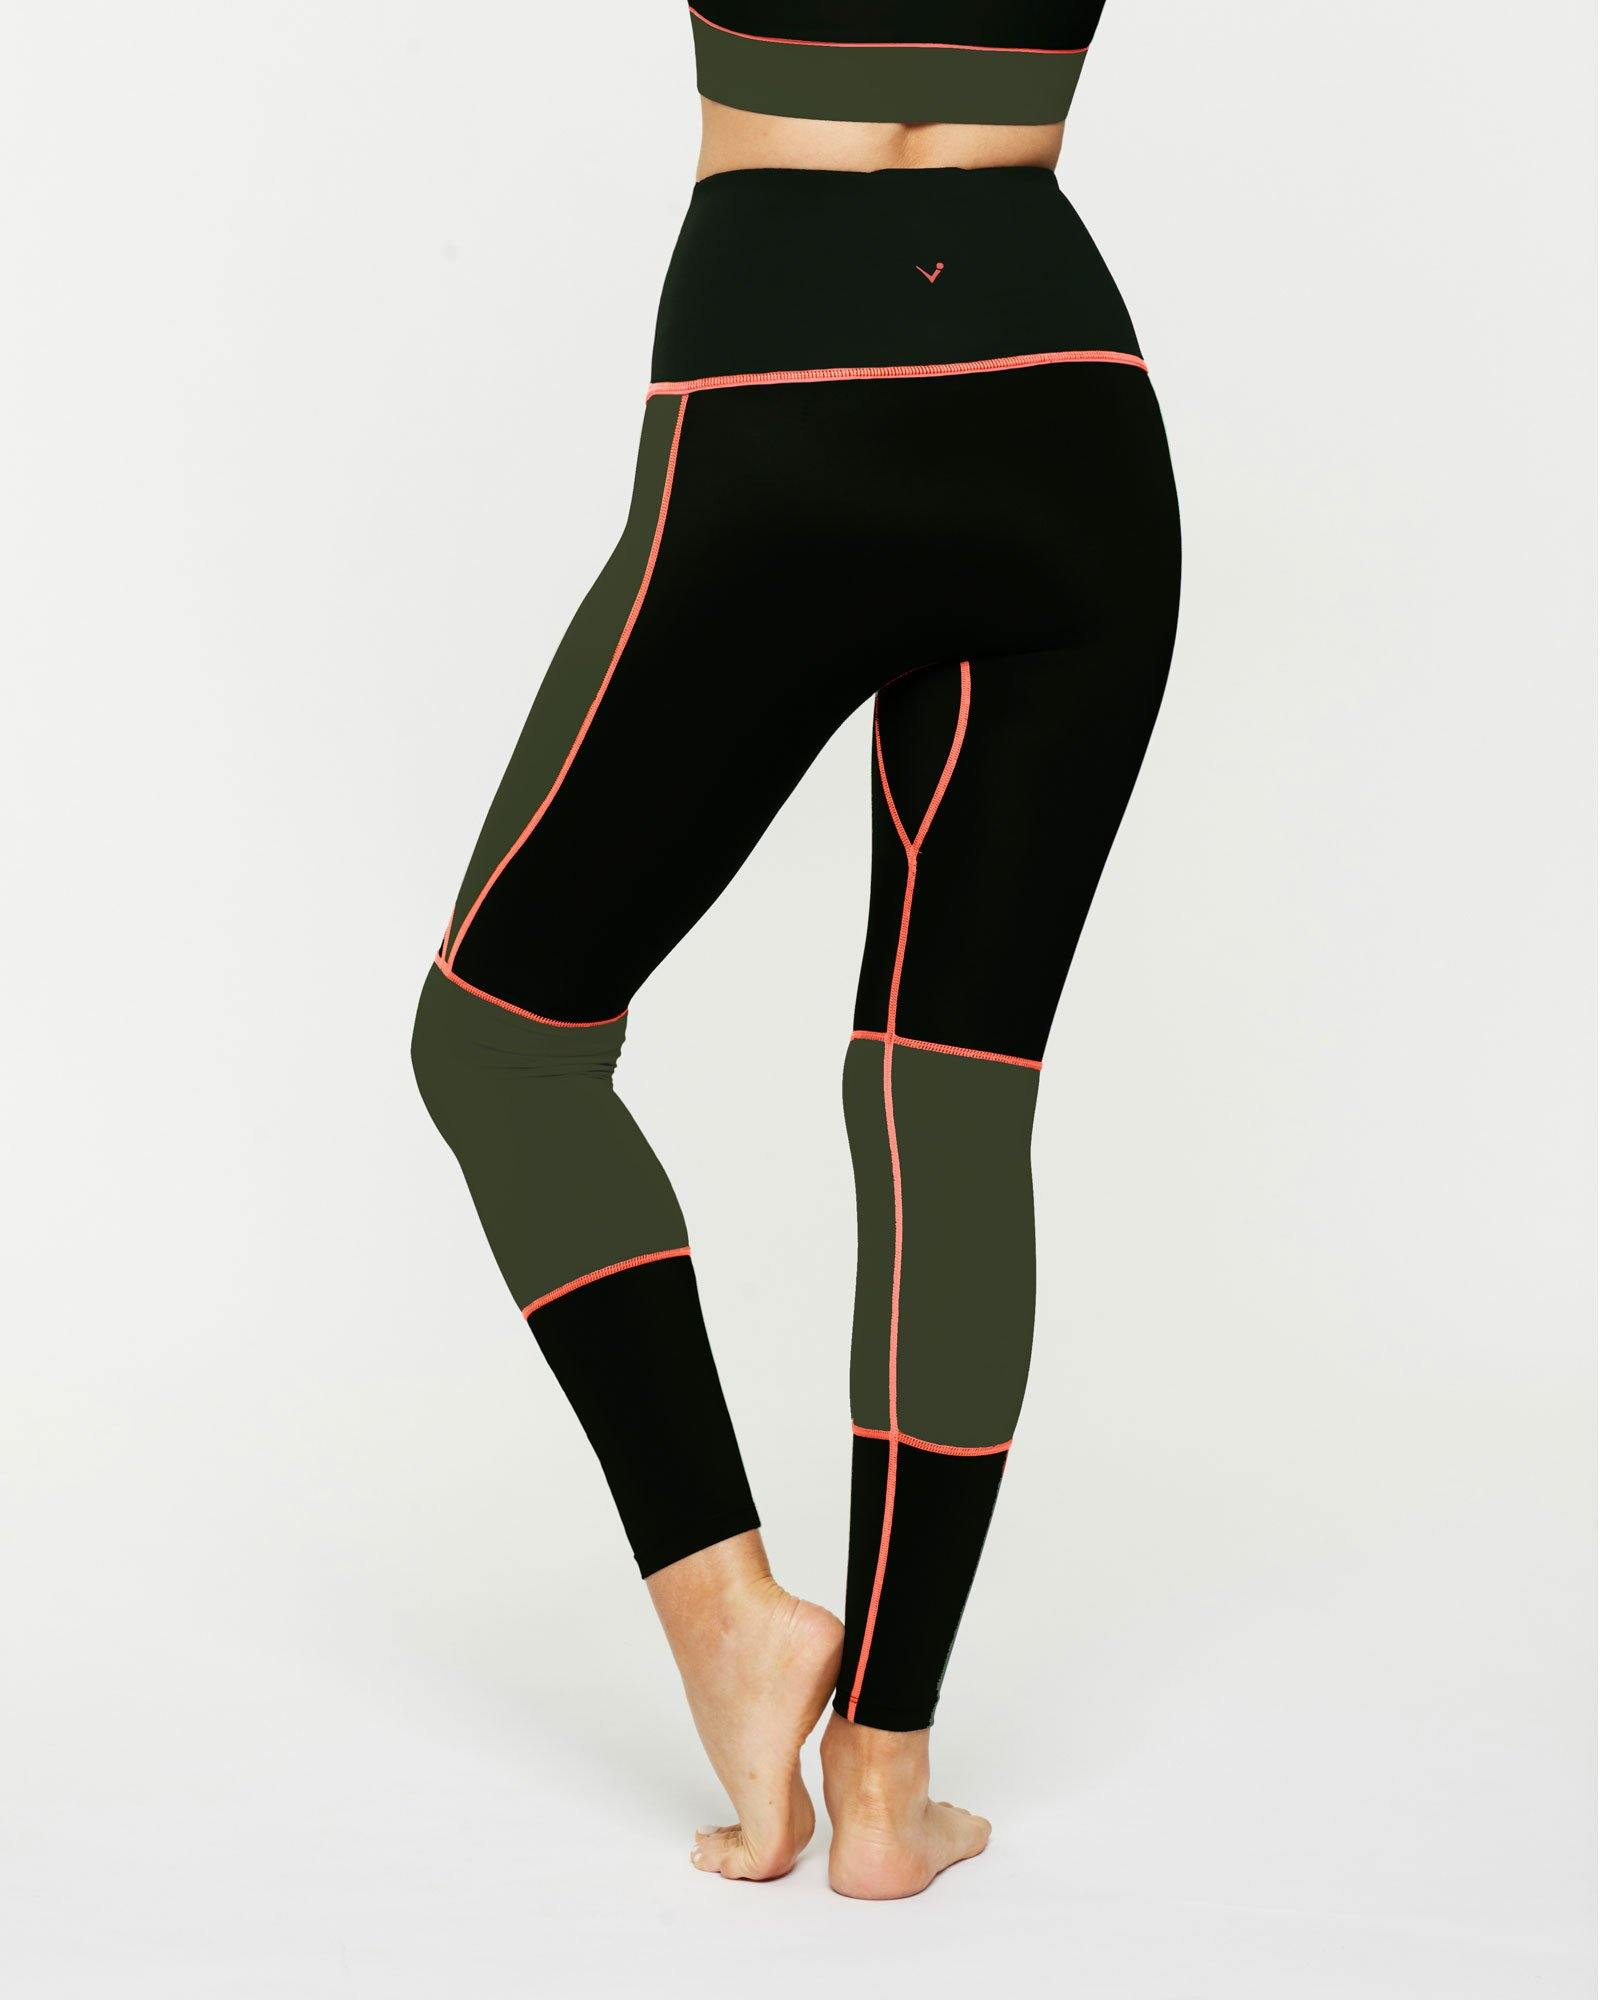 Sergeant Olive GRACILIS 7/8 HIGH WAISTED LEGGING Black WITH CONTRAST PANELS in dark Olive and contrast orange stitching, back VIEW for pilates, barre, yoga, dance, gym-workouts